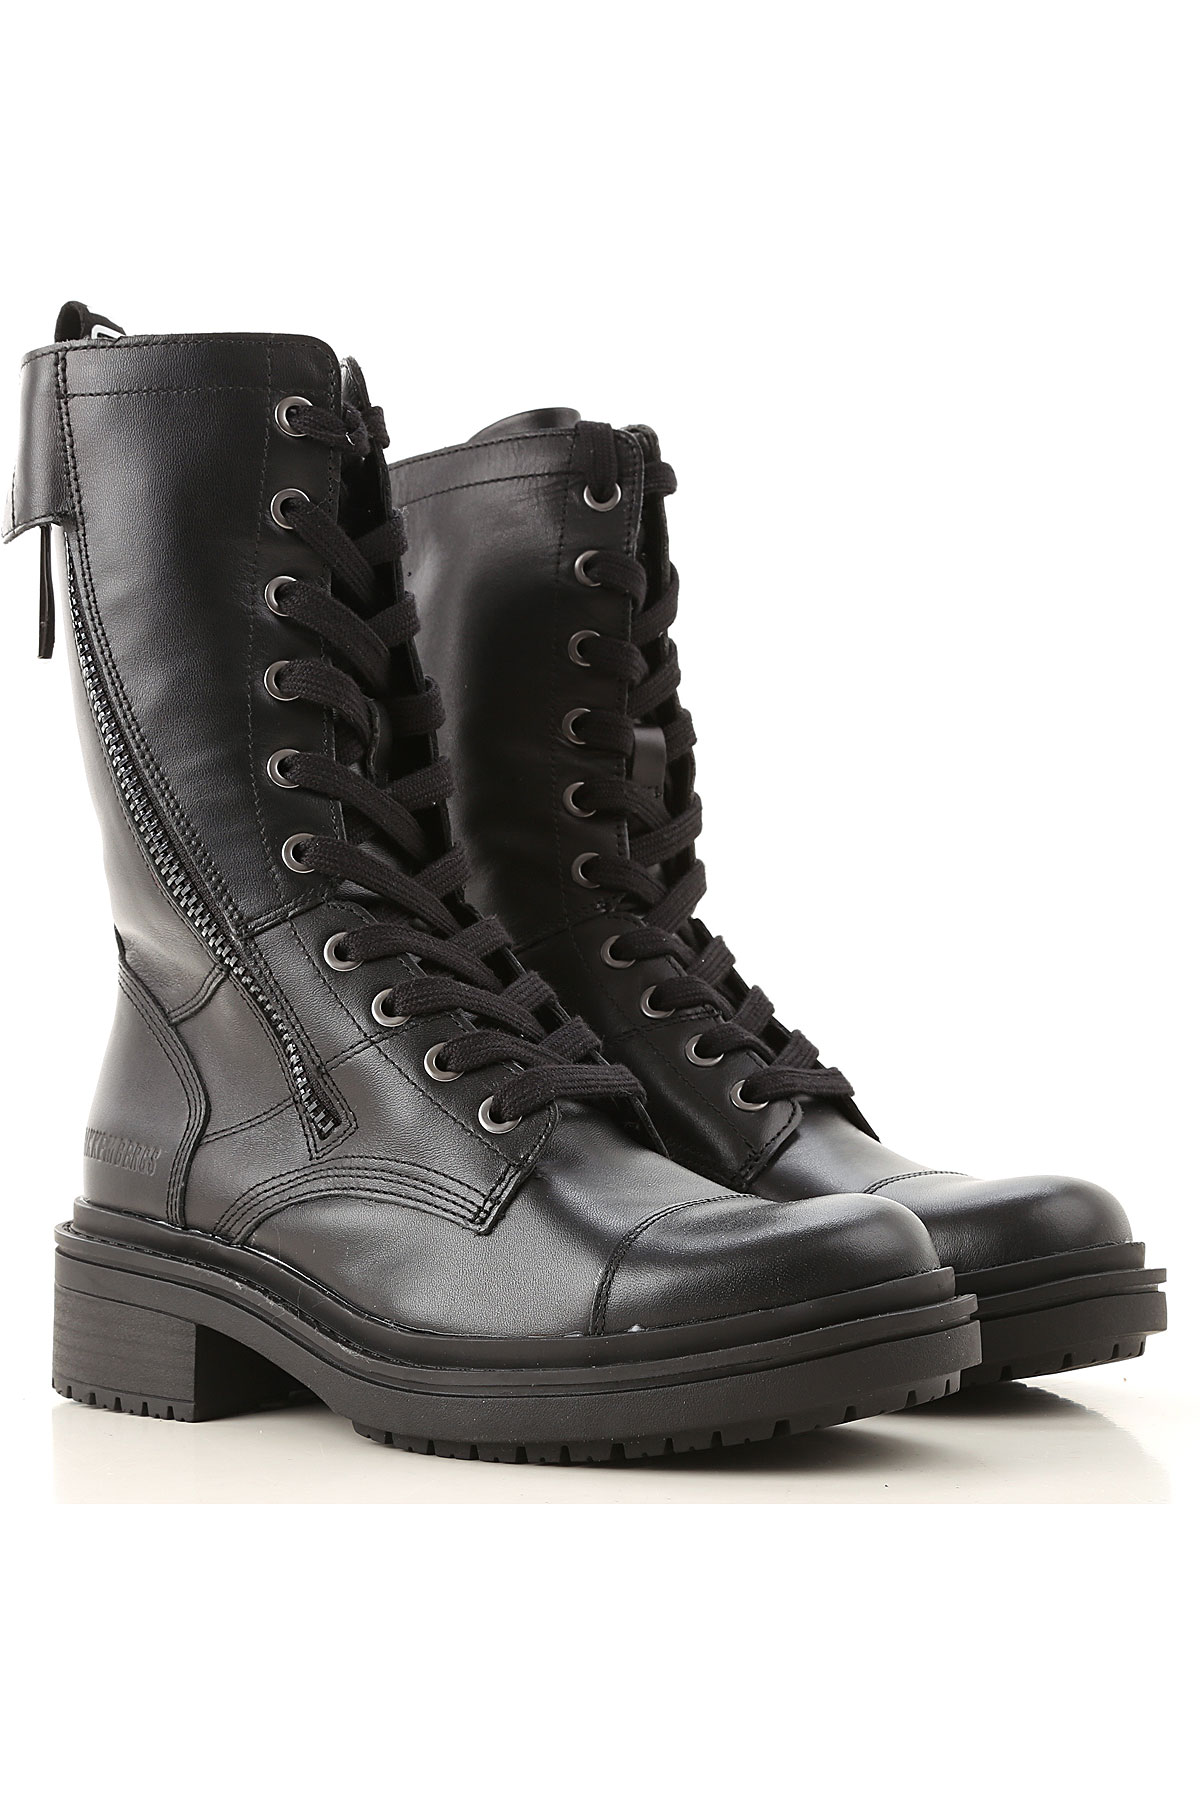 Dirk Bikkembergs Boots for Women, Booties On Sale, Black, Leather, 2019, 6 9